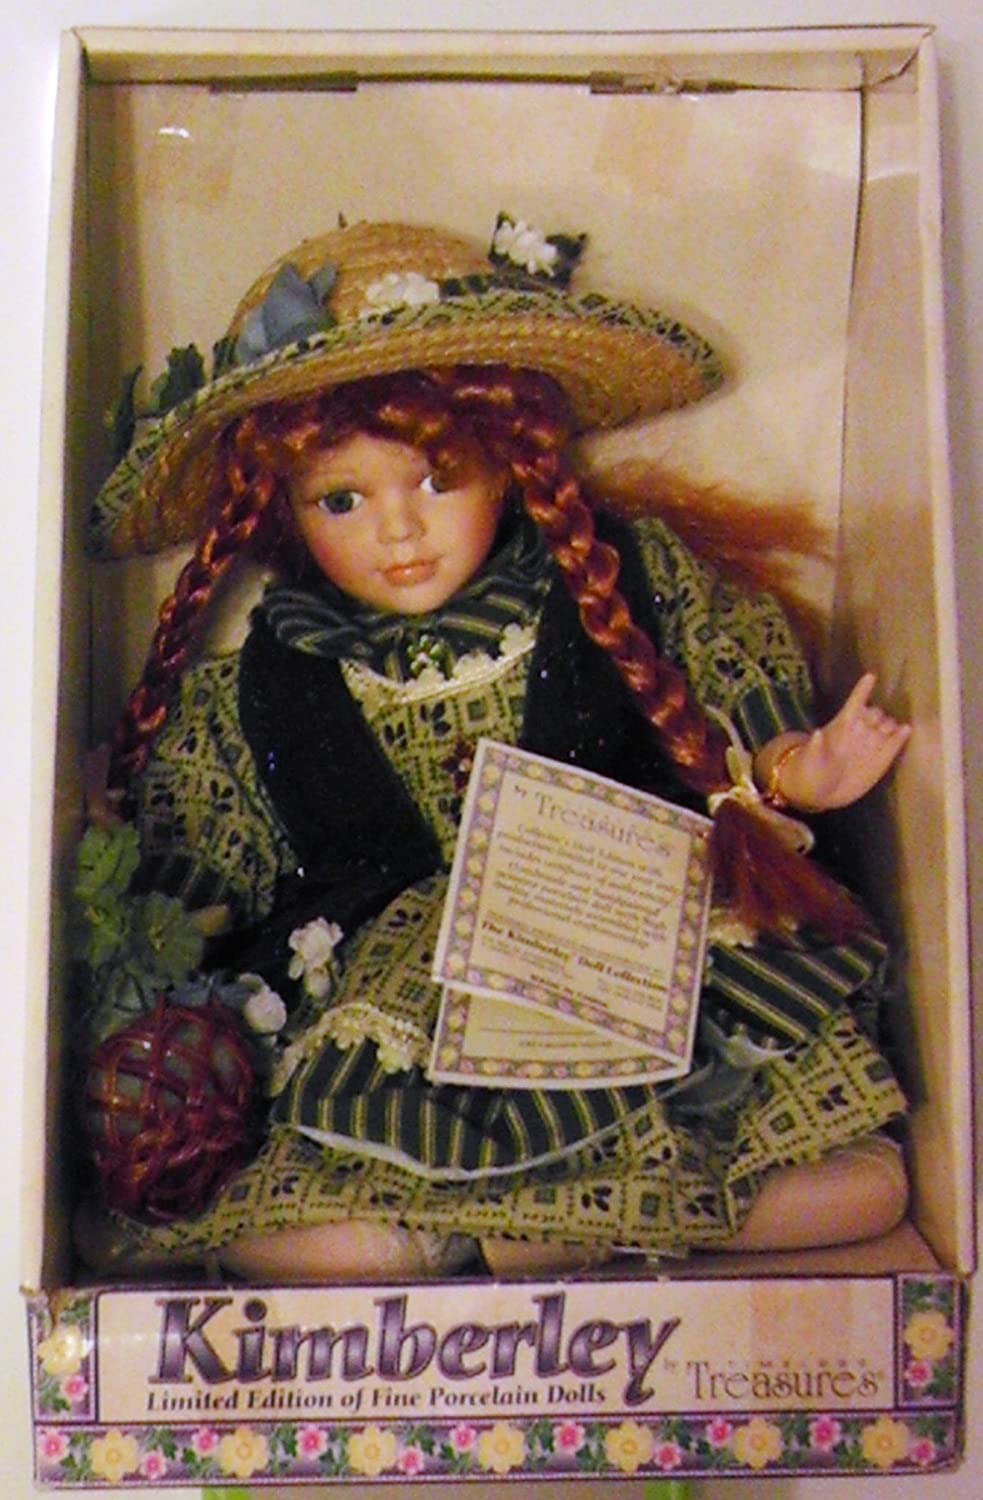 Amazon.com: Kimberley Limited Edition of Fine Porcelain Doll: Home